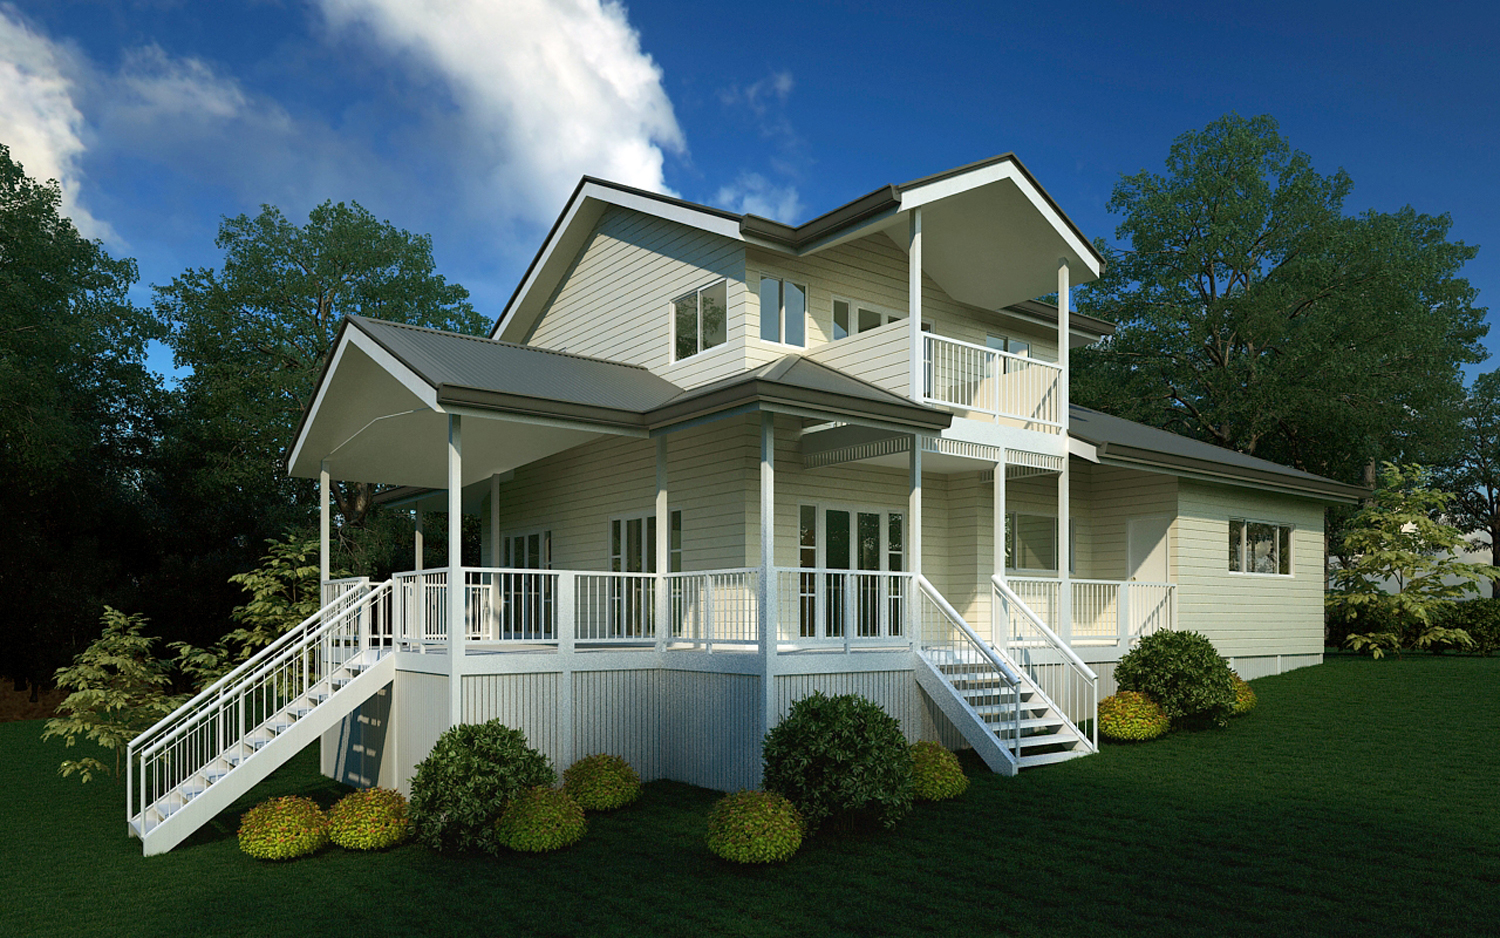 Kit home designs ascot completehome for Complete kit homes